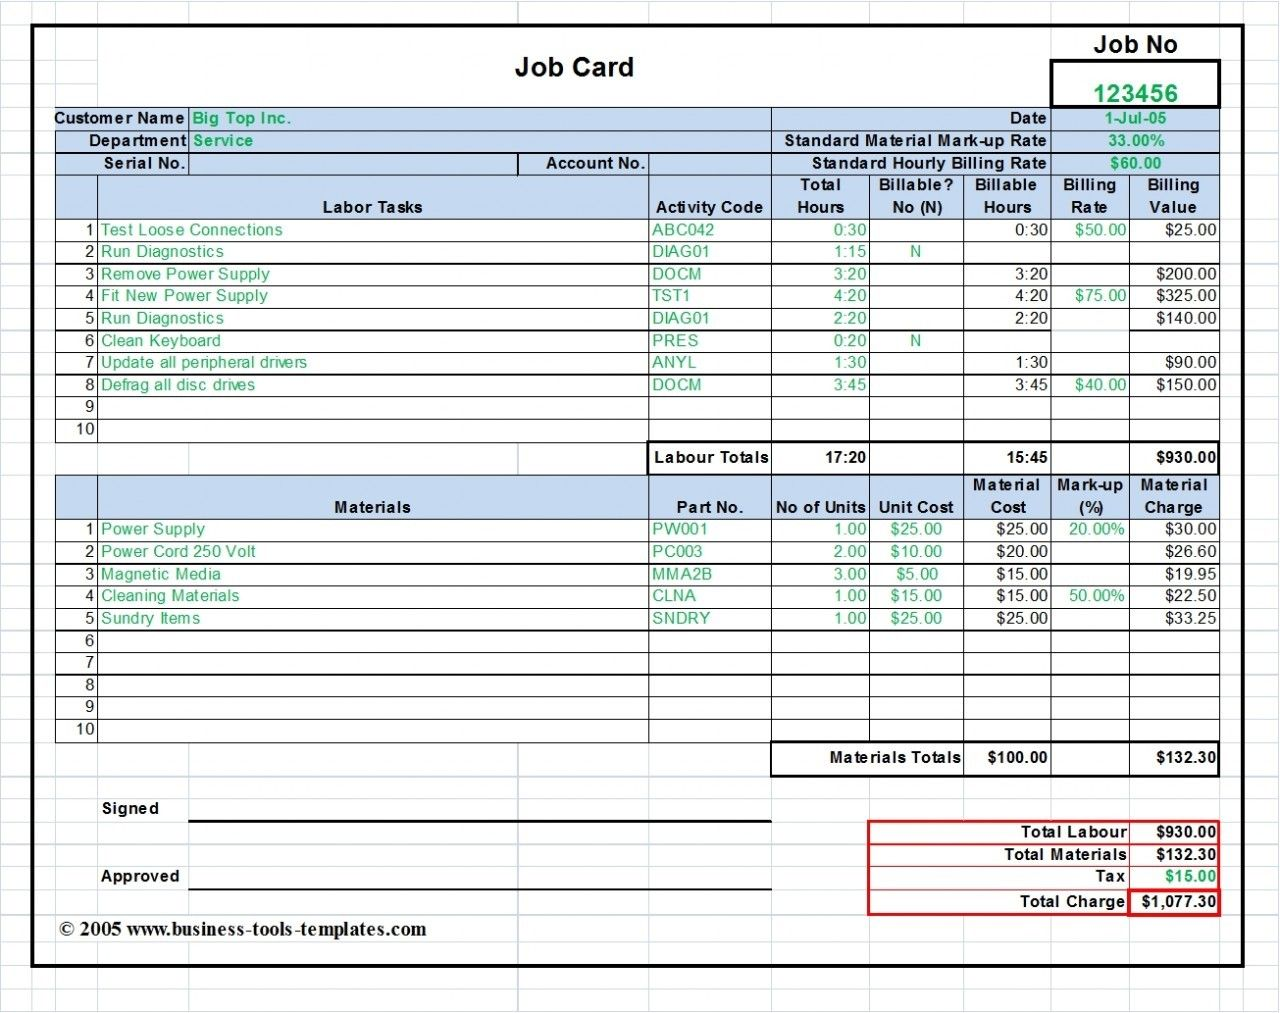 Labor  Material Cost Estimator And Job Card Template MsExcel